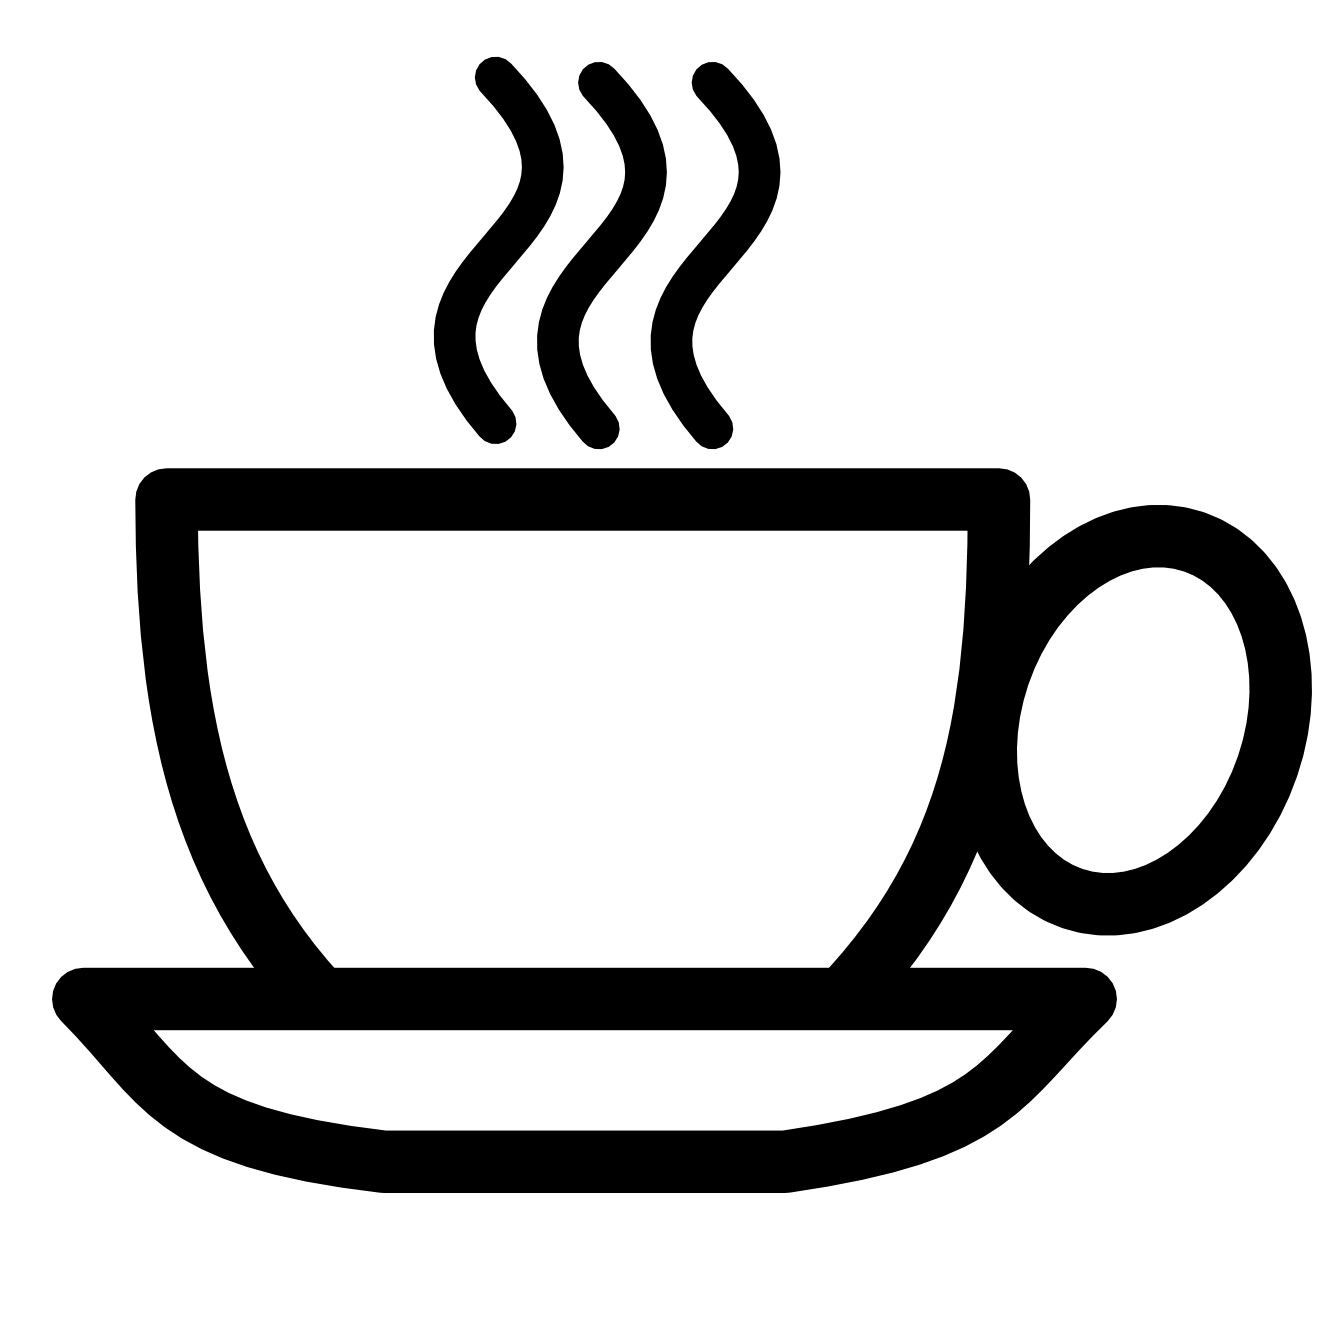 Teacup black and white. Coffee clipart